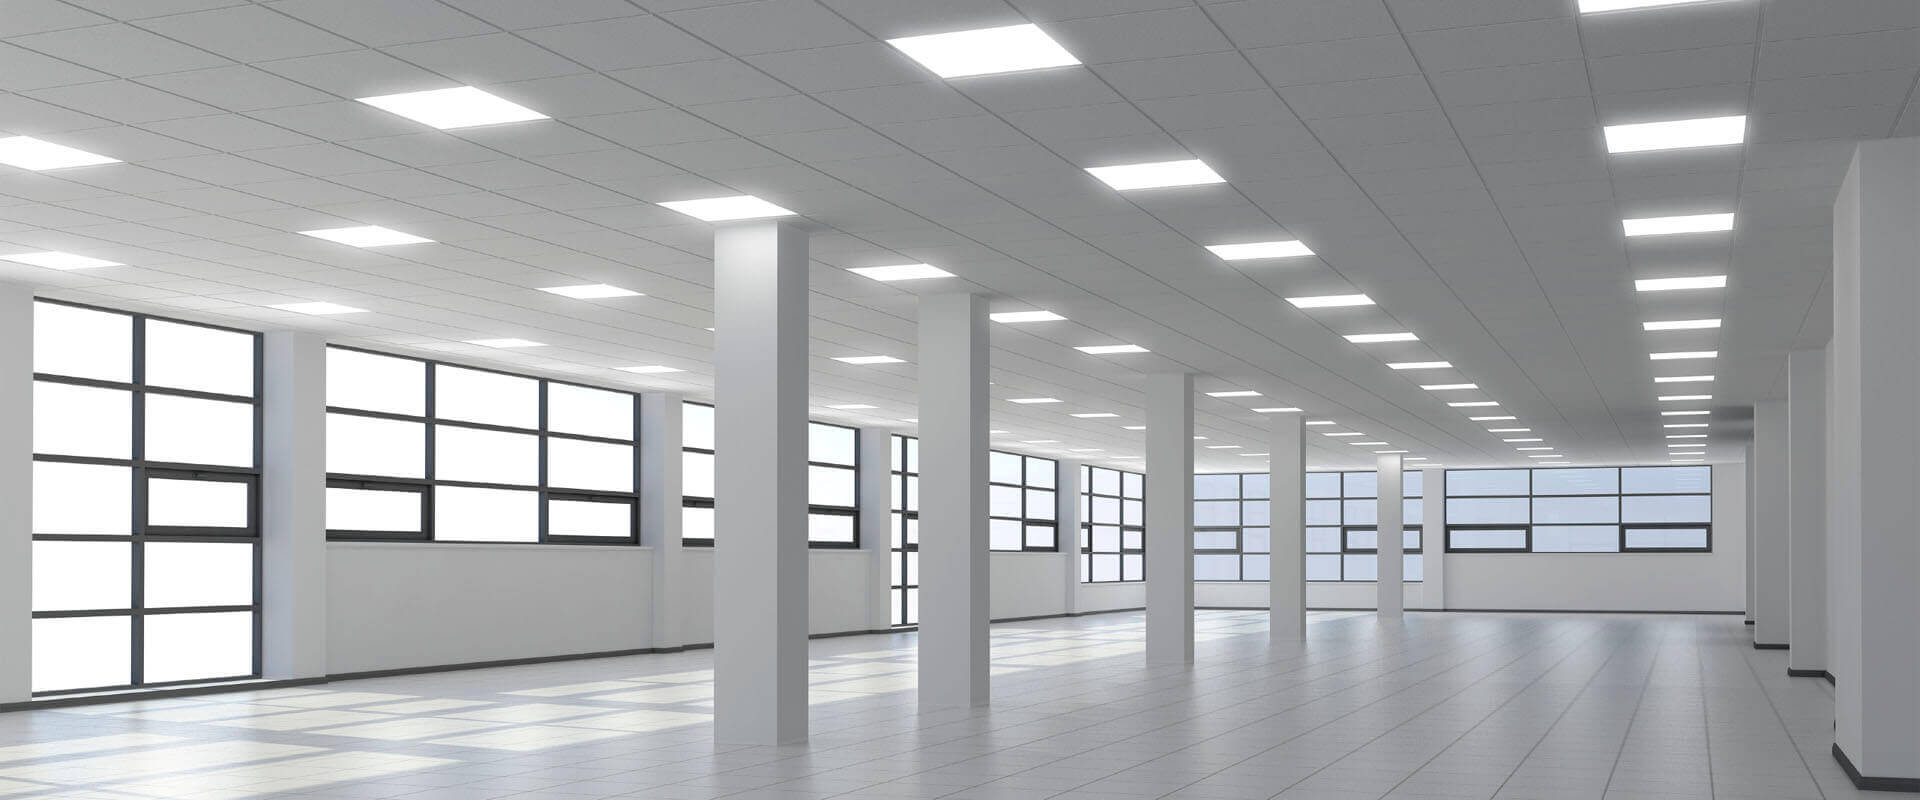 LED lighting services in Rayleigh